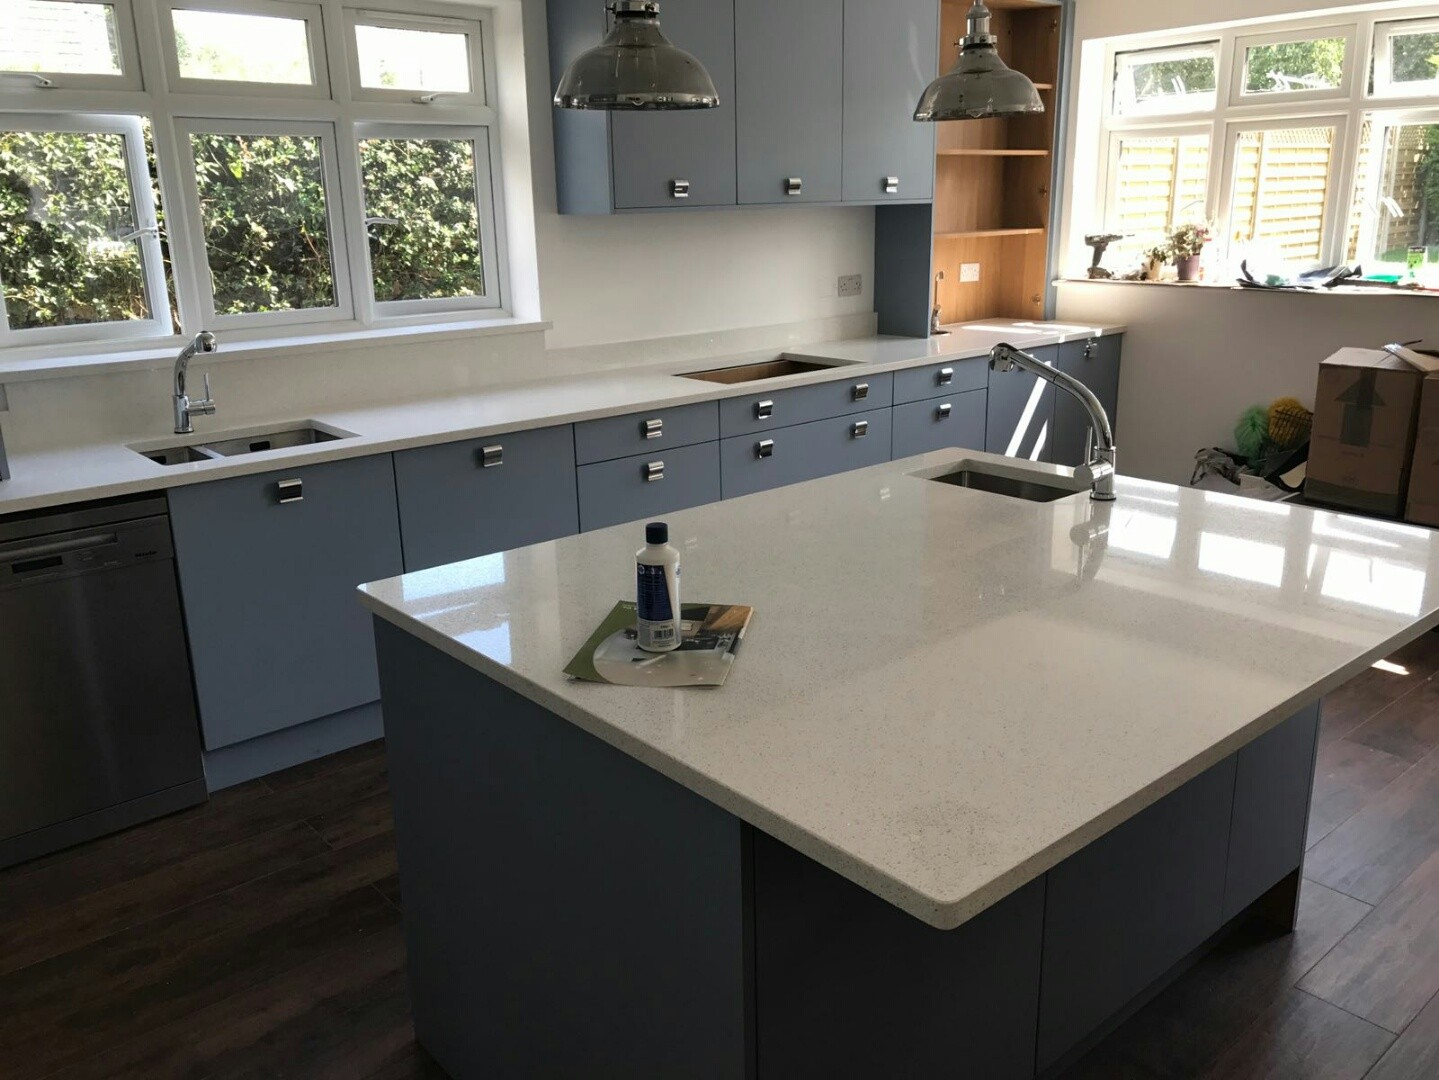 Our take on how to add coloured cabinets to your kitchen space